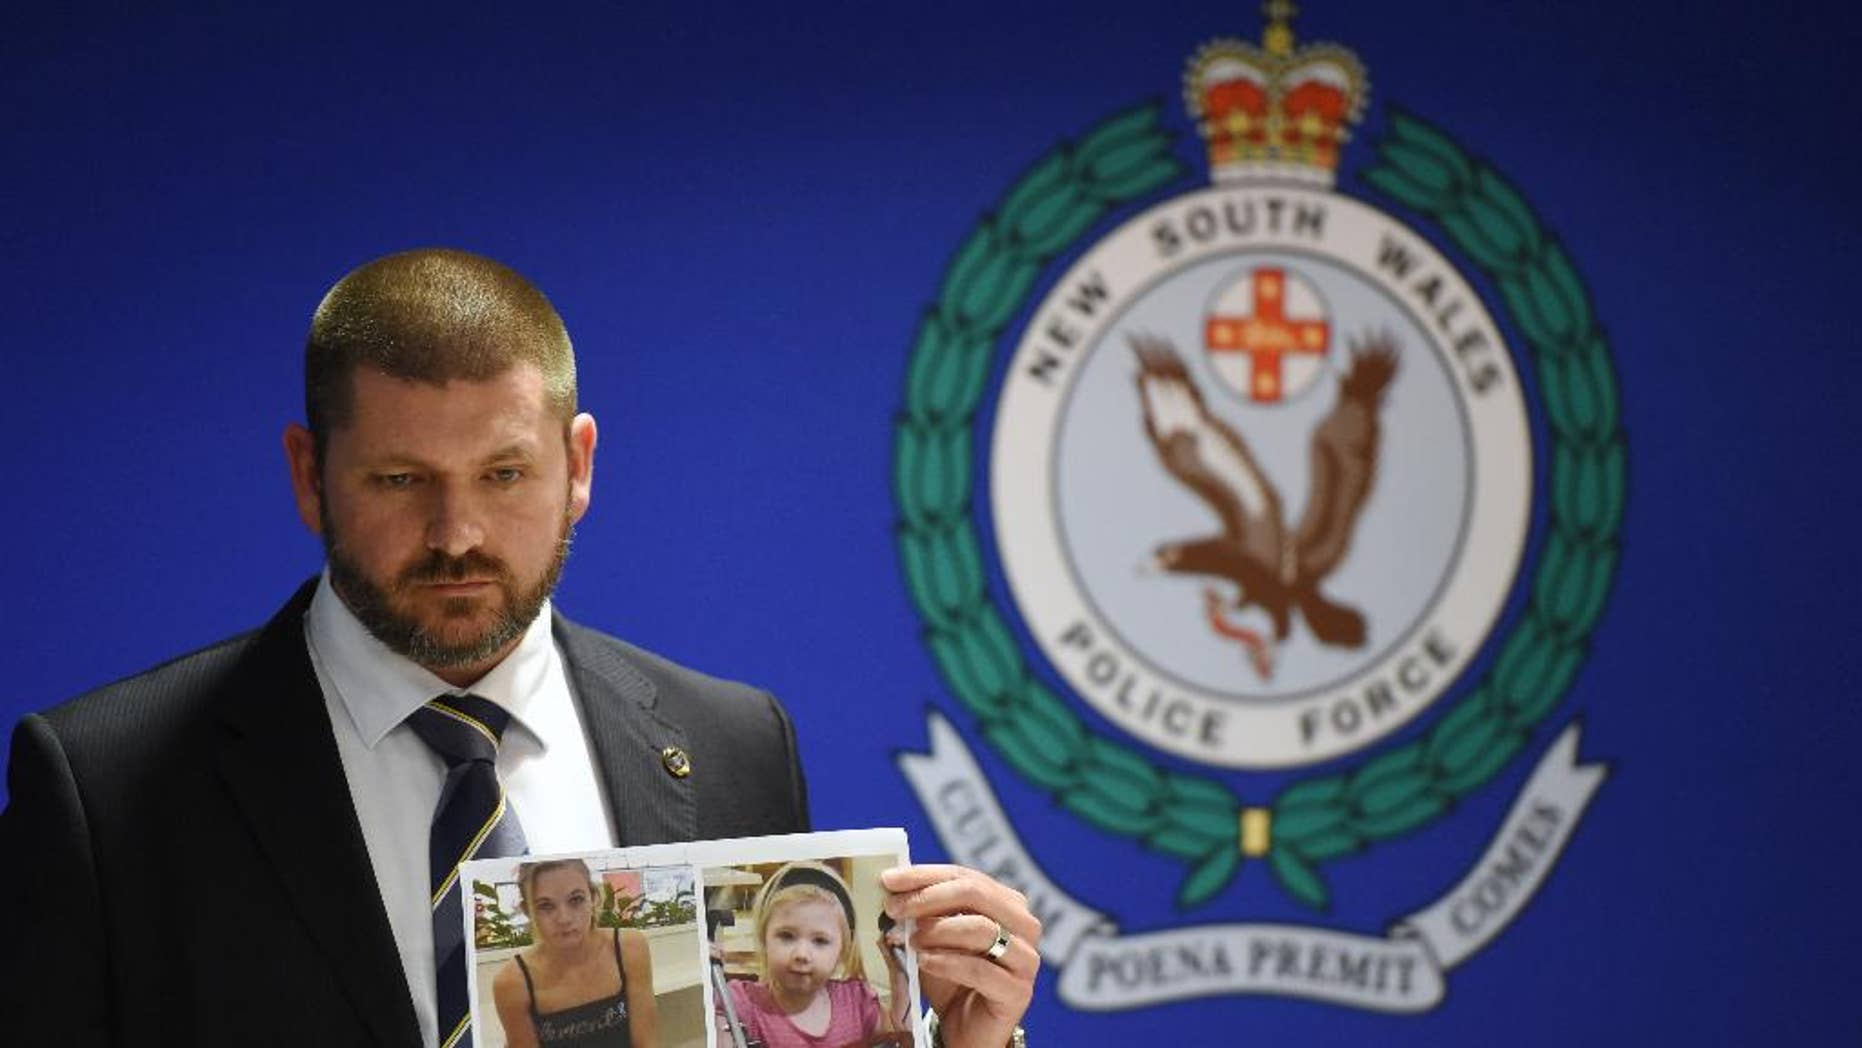 Police Detective Inspector Jason Dickinson holds up a photo of Karlie Jade Pearce-Stevenson and her daughter Khandalyce Kiara Pearce, during a press conference in Sydney, Wednesday, Oct. 21, 2015. A child whose decomposed body was found in a suitcase in southern Australia earlier this year is the daughter of a woman whose skeletal remains were found in 2010 in a forest 1,200 kilometers (750 miles) away, police said. (Dean Lewins/AAP Image via AP) NO ARCHIVING, AUSTRALIA OUT, NEW ZEALAND OUT, PAPUA NEW GUINEA OUT, SOUTH PACIFIC OUT